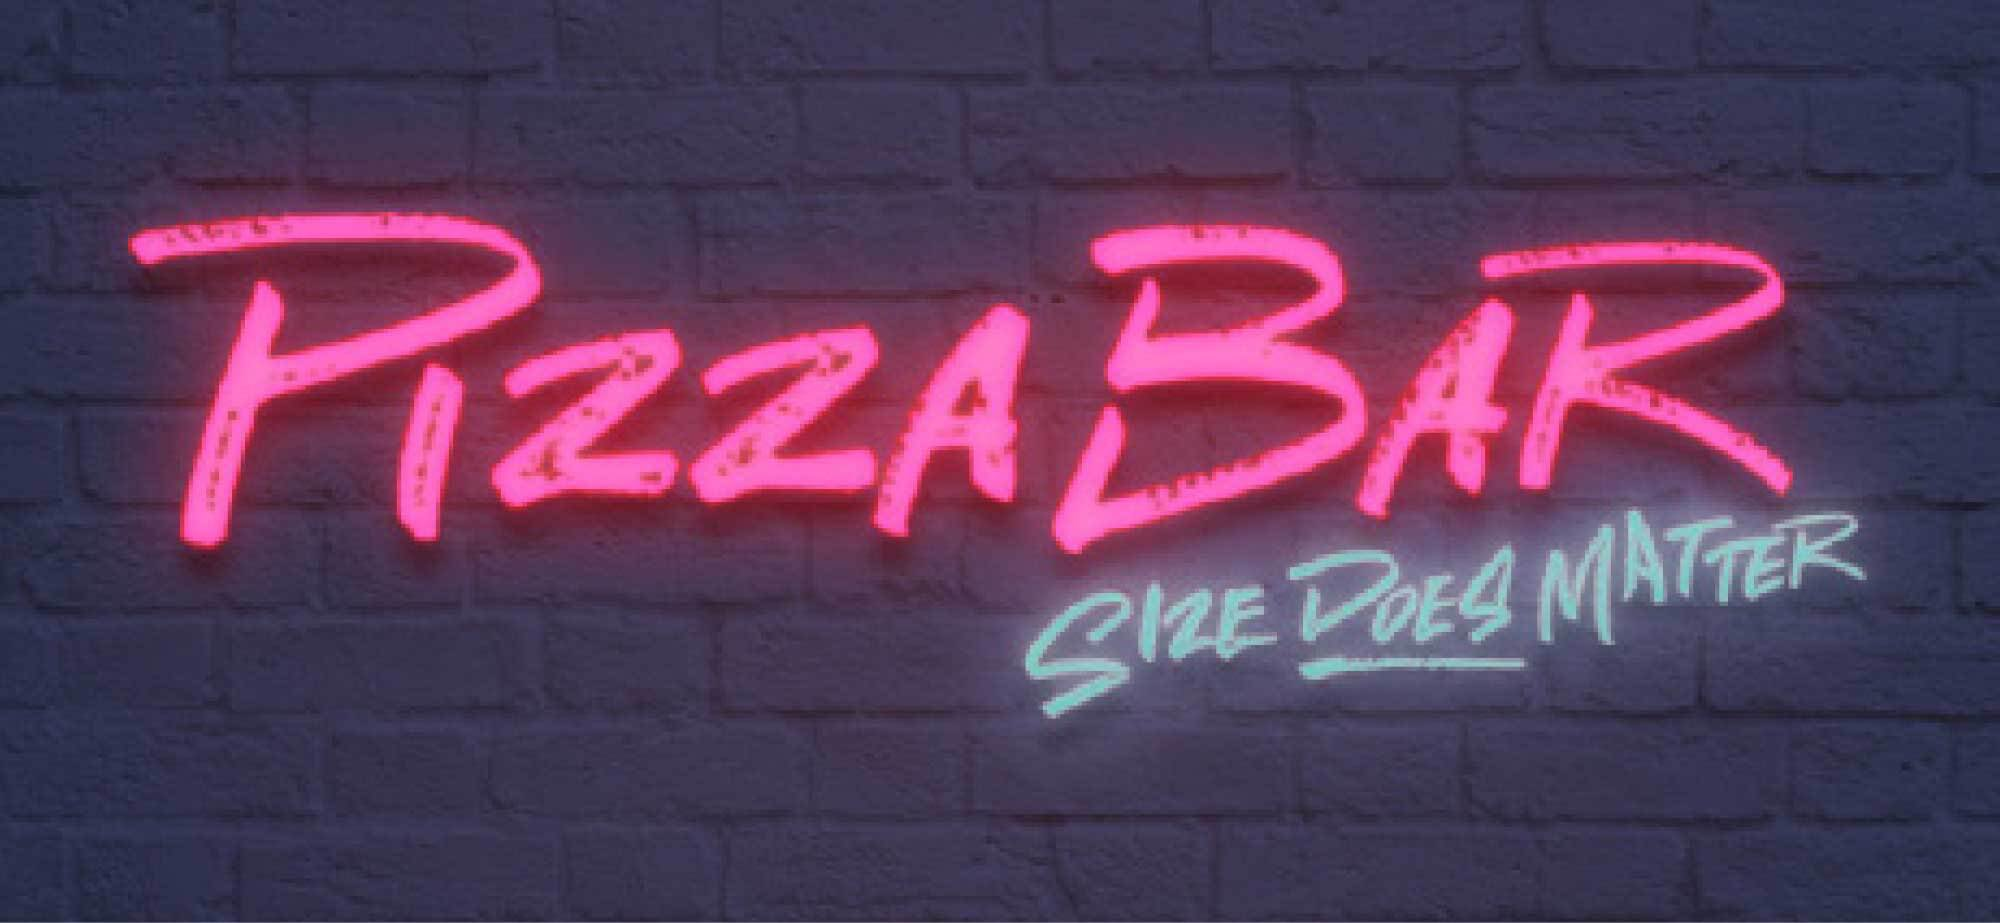 Pizza Bar branded neon sign